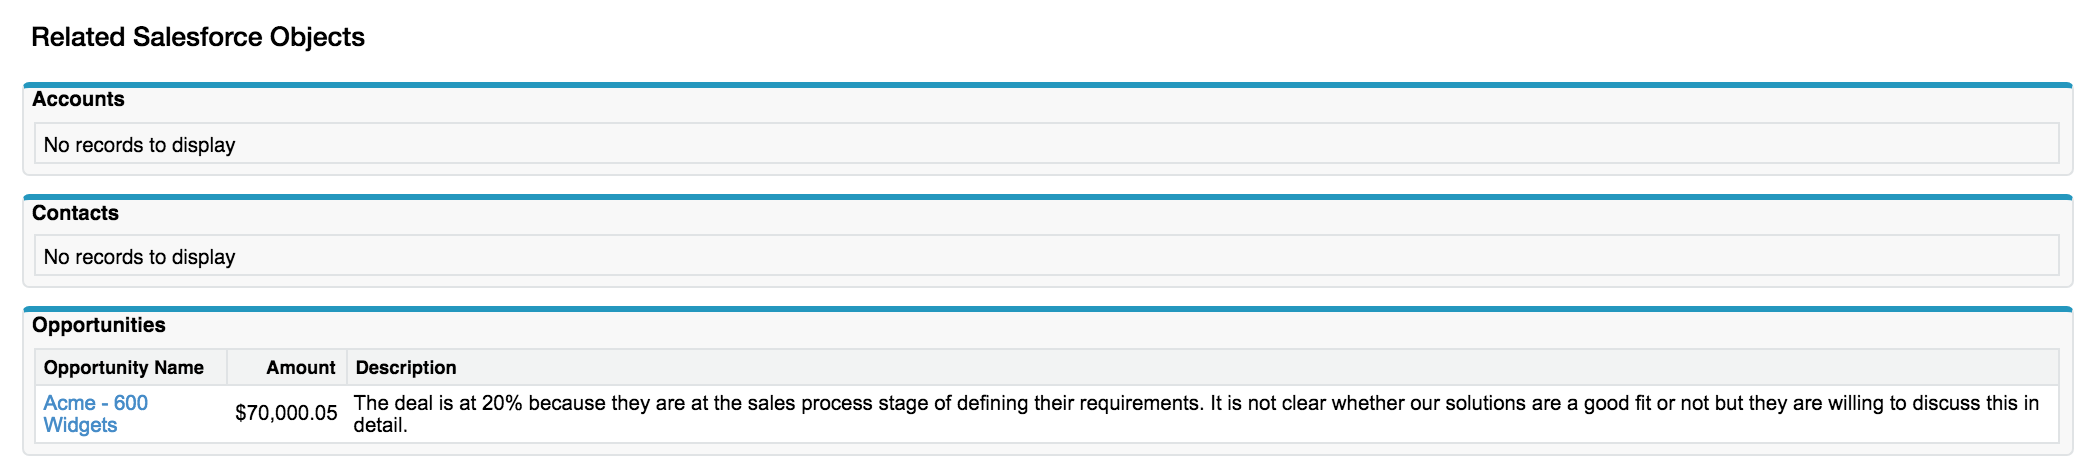 How to integrate Salesforce Object with JIRA Issue - zAgile